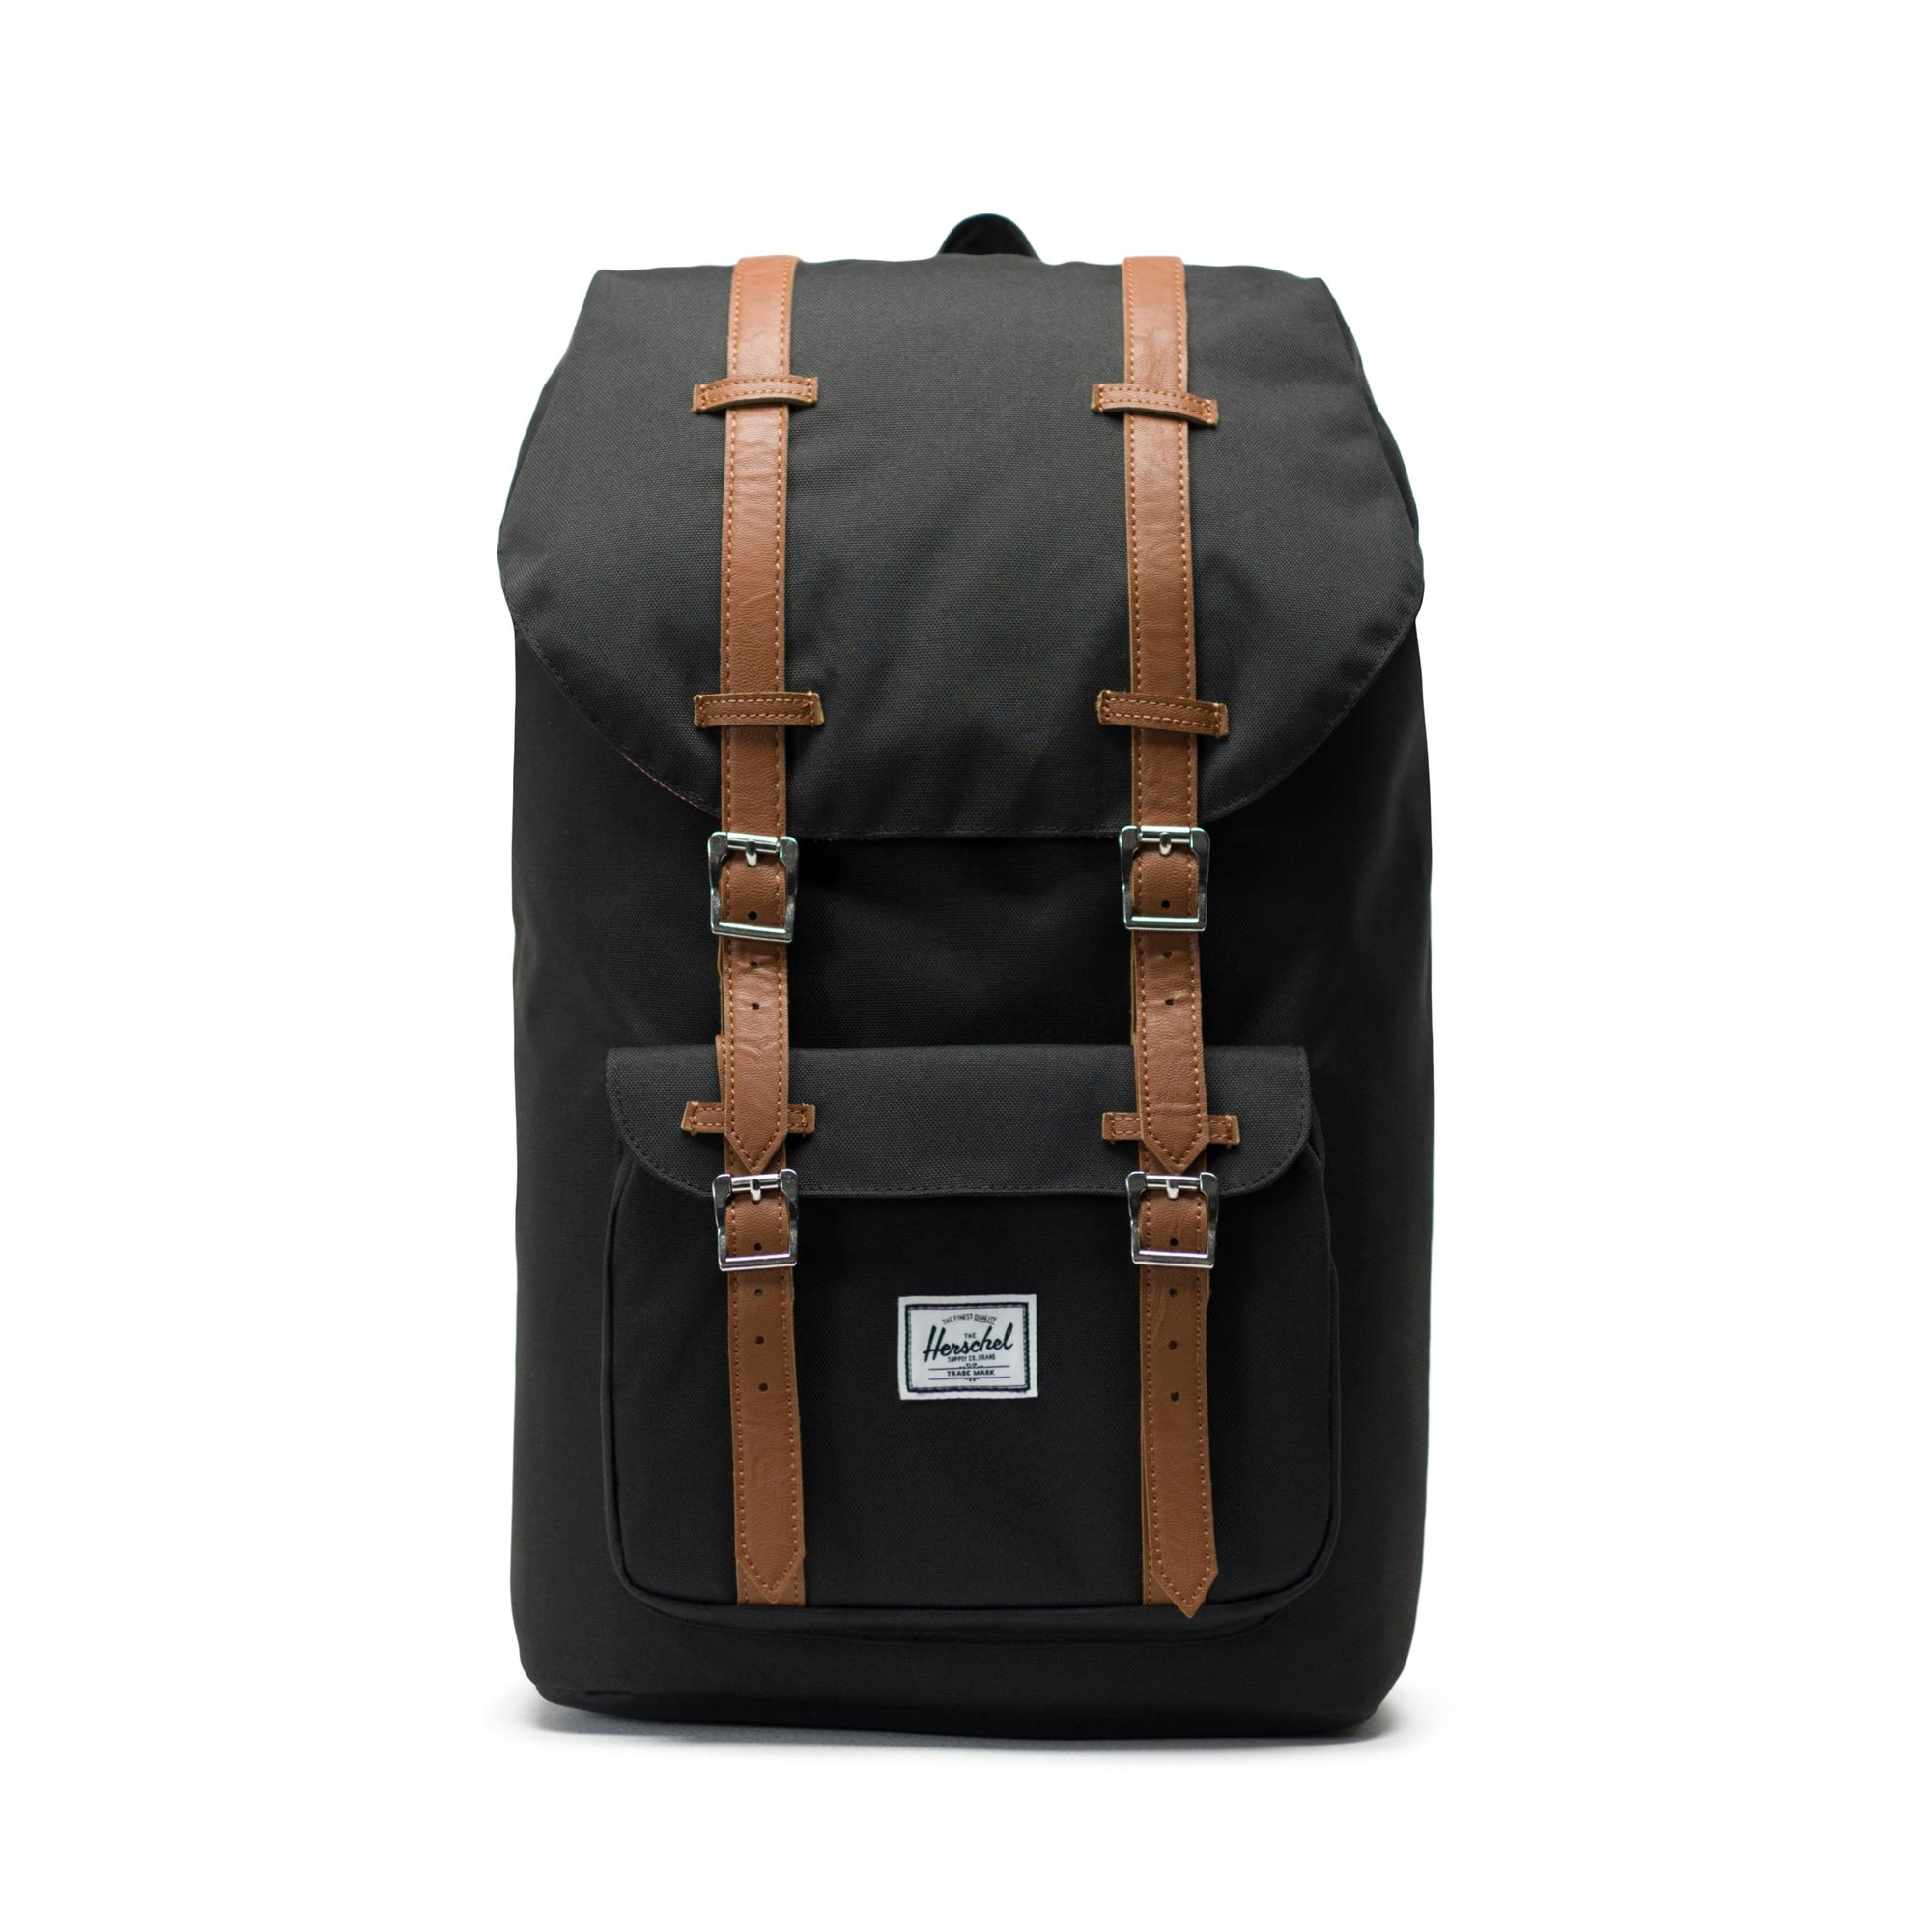 def699562b5c Herschel Little America Backpack